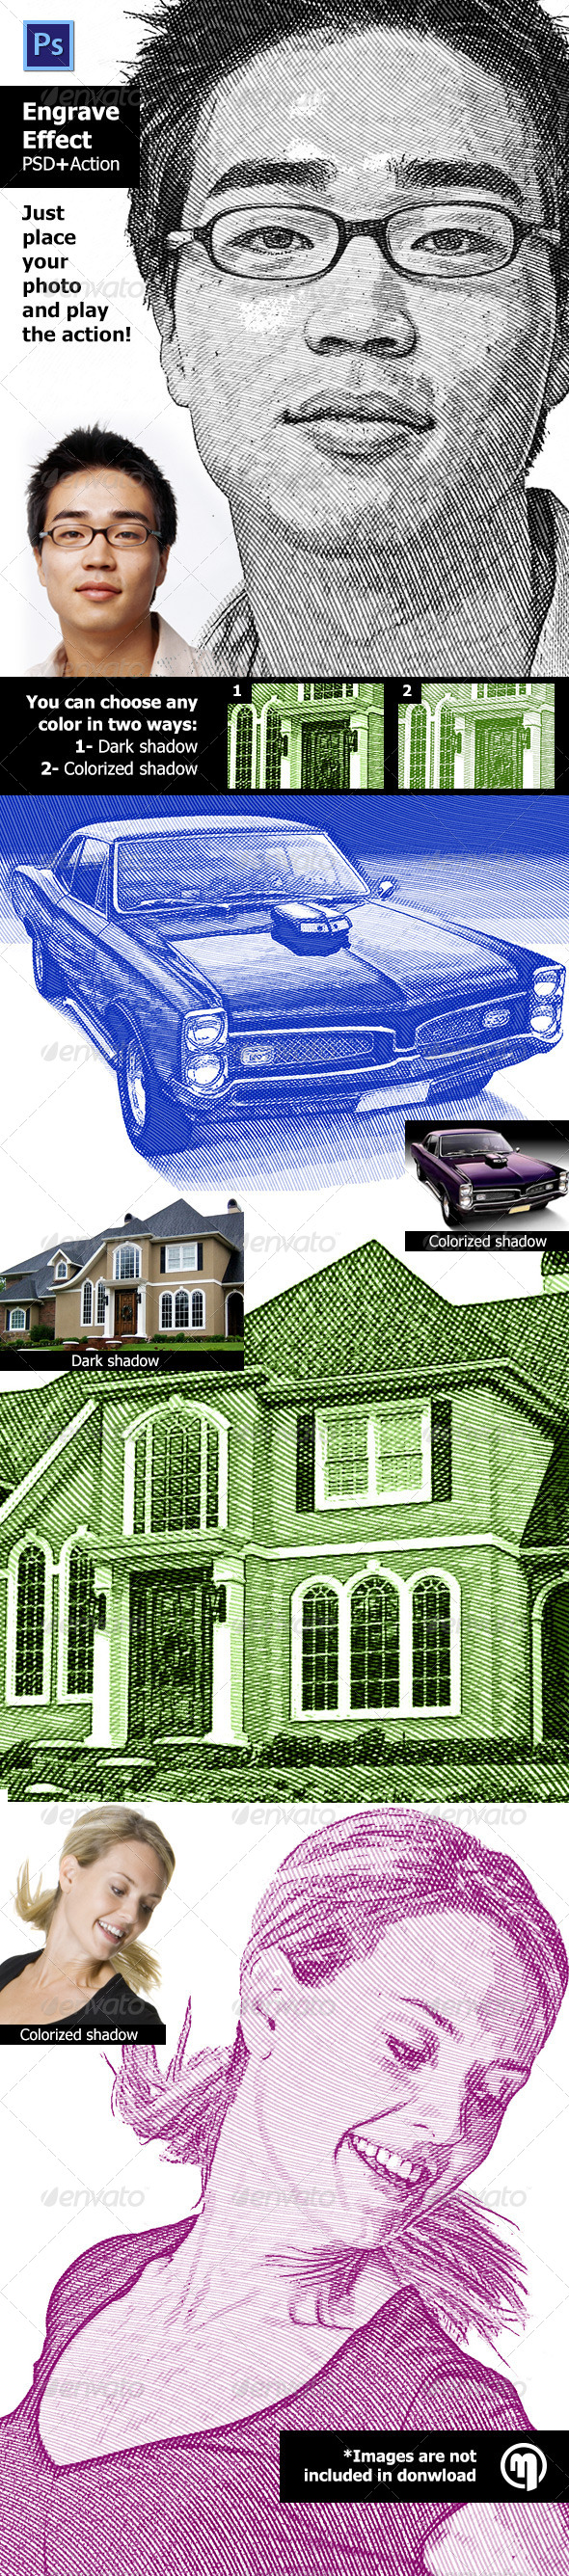 GraphicRiver Engrave Effect Photoshop Action 5986448